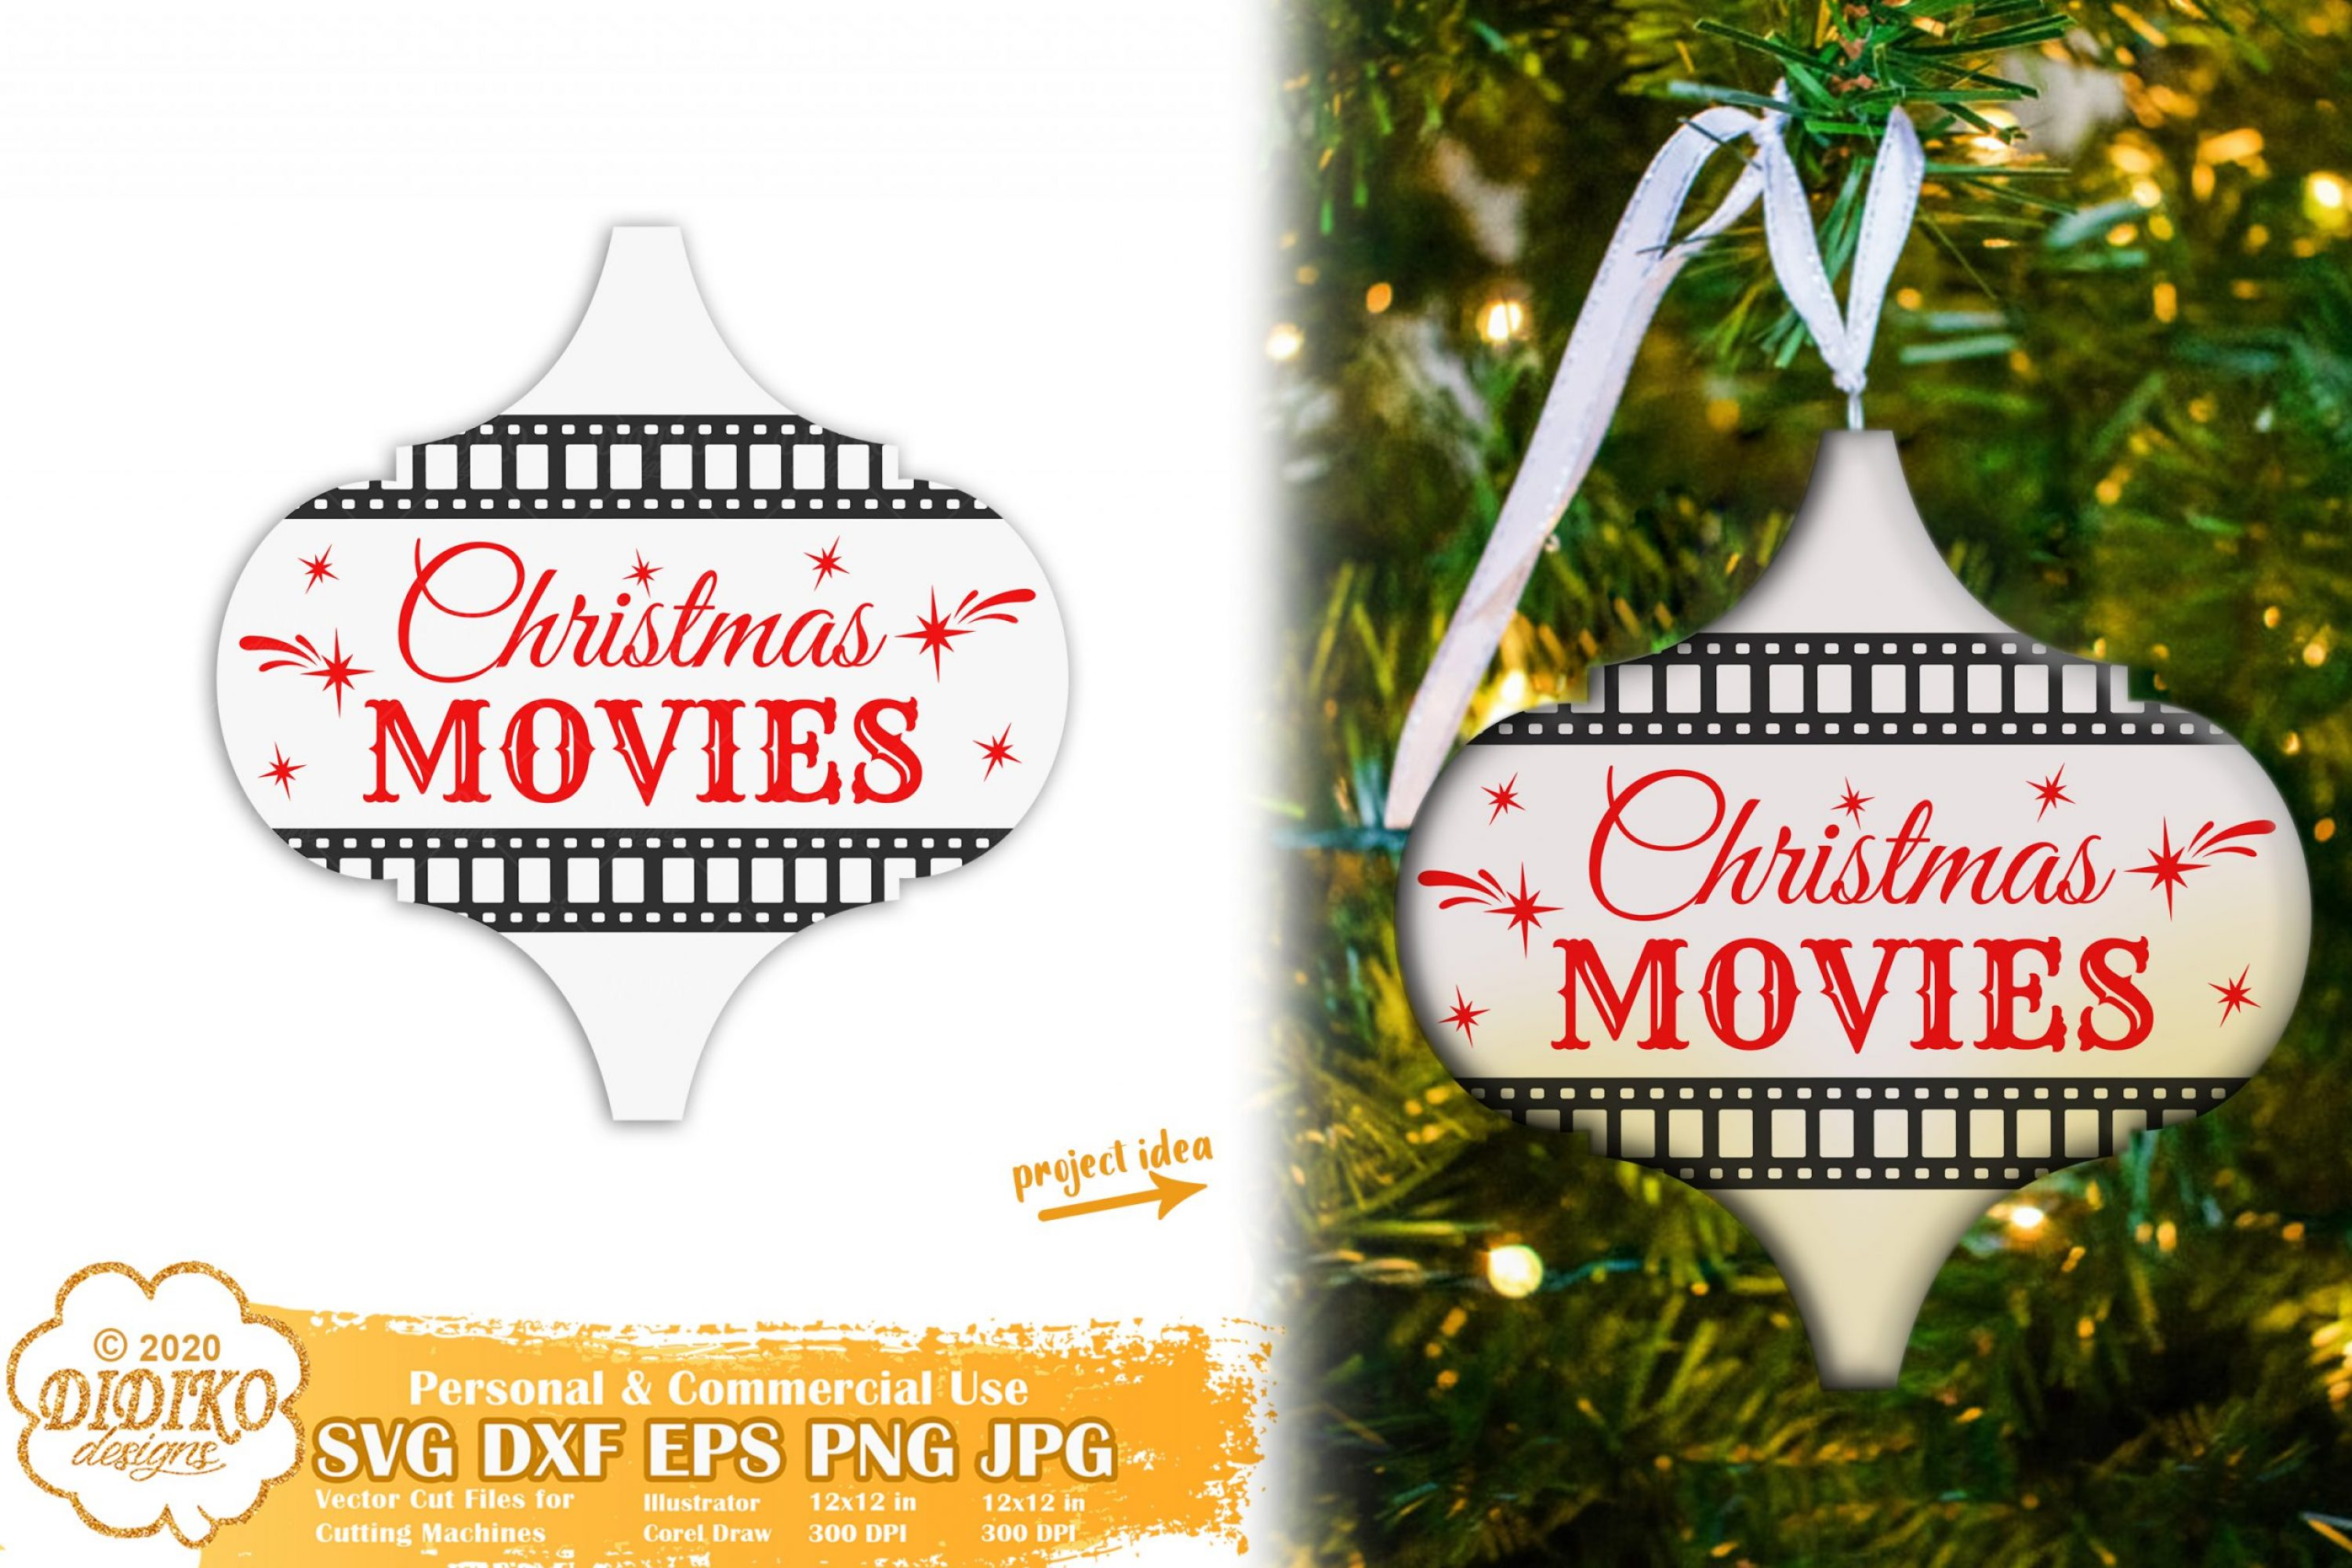 Arabesque Tile SVG #1, Christmas Movies Svg, Family